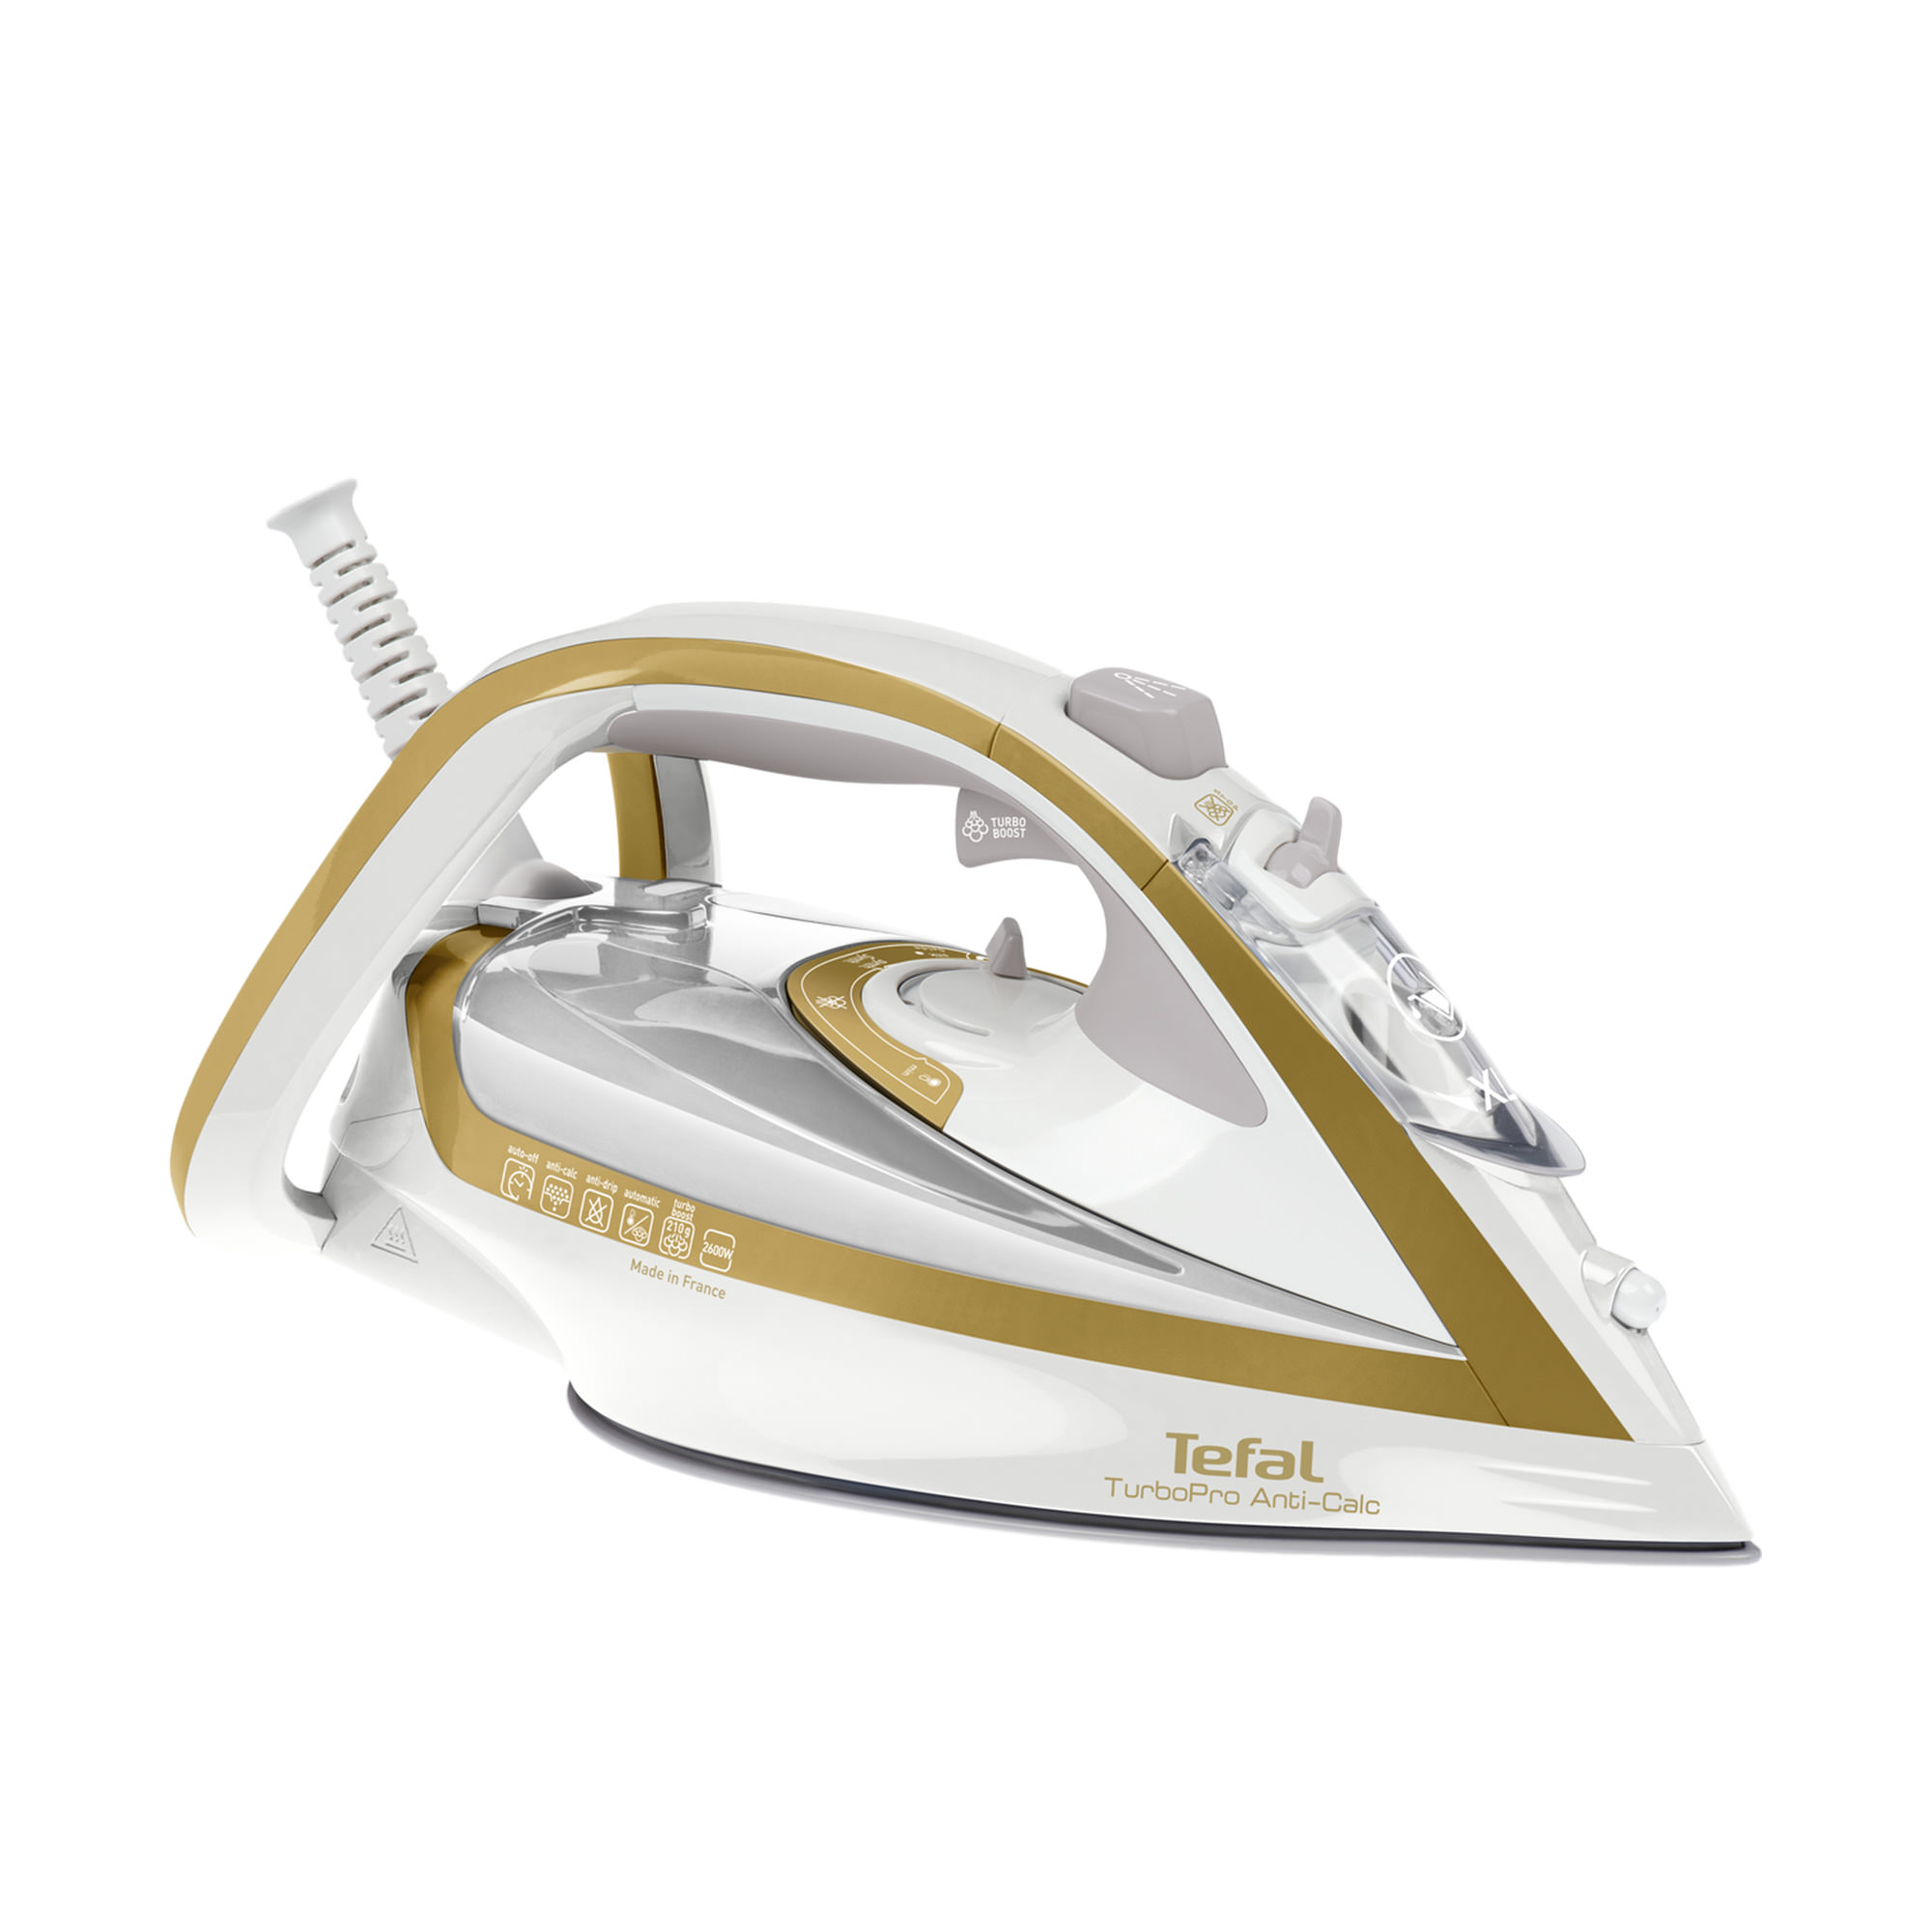 Tefal TurboPro Airglide Anti Calc Steam Iron